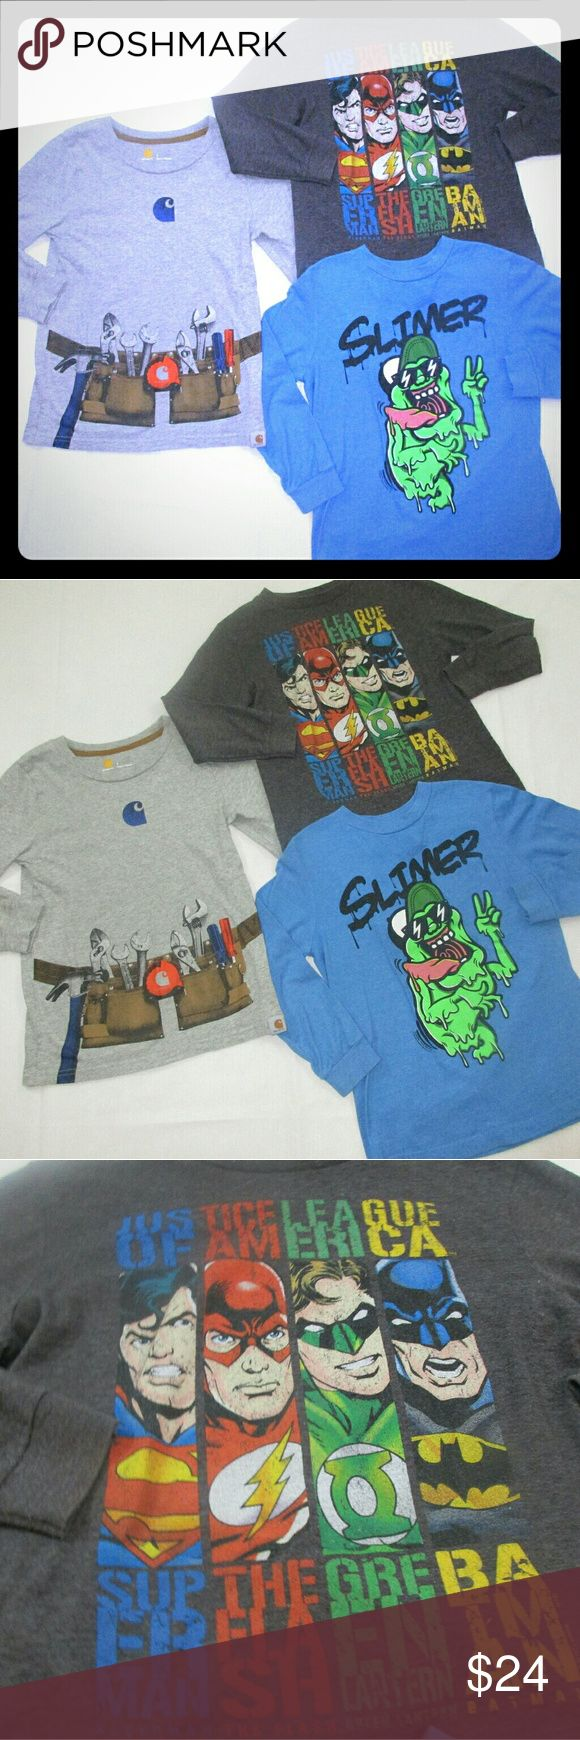 Lot of boys shirts size 7 Carhartt batman superman 3 Longsleeve shirts  Carhartt  Old Navy graphic  Marvel Comics Superheros  Guarantee your little guy will love ALL 3!  PLEASE MAKE OFFERS  THROUGH BUTTON.   TRADES ALSO WELCOME ESPECIALLY BOYS SIZES 2T 3T OR 14/16 Carhartt Shirts & Tops Tees - Long Sleeve